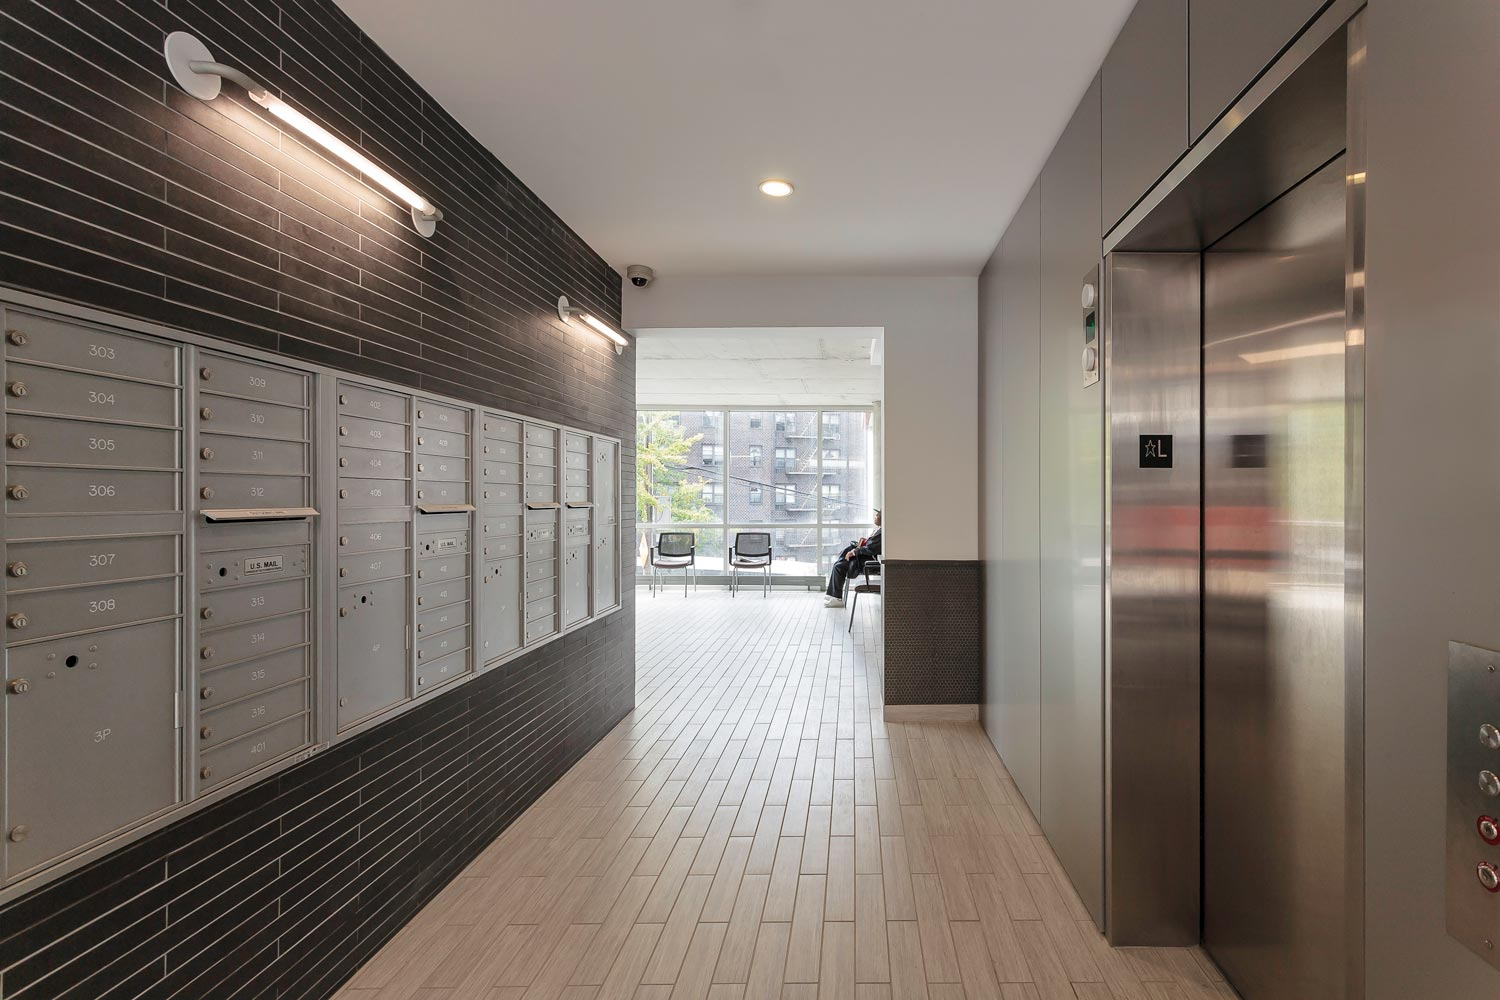 The lobby at Kingsbridge Terrace offer expansive views with mailboxes tucked away across from elevators.